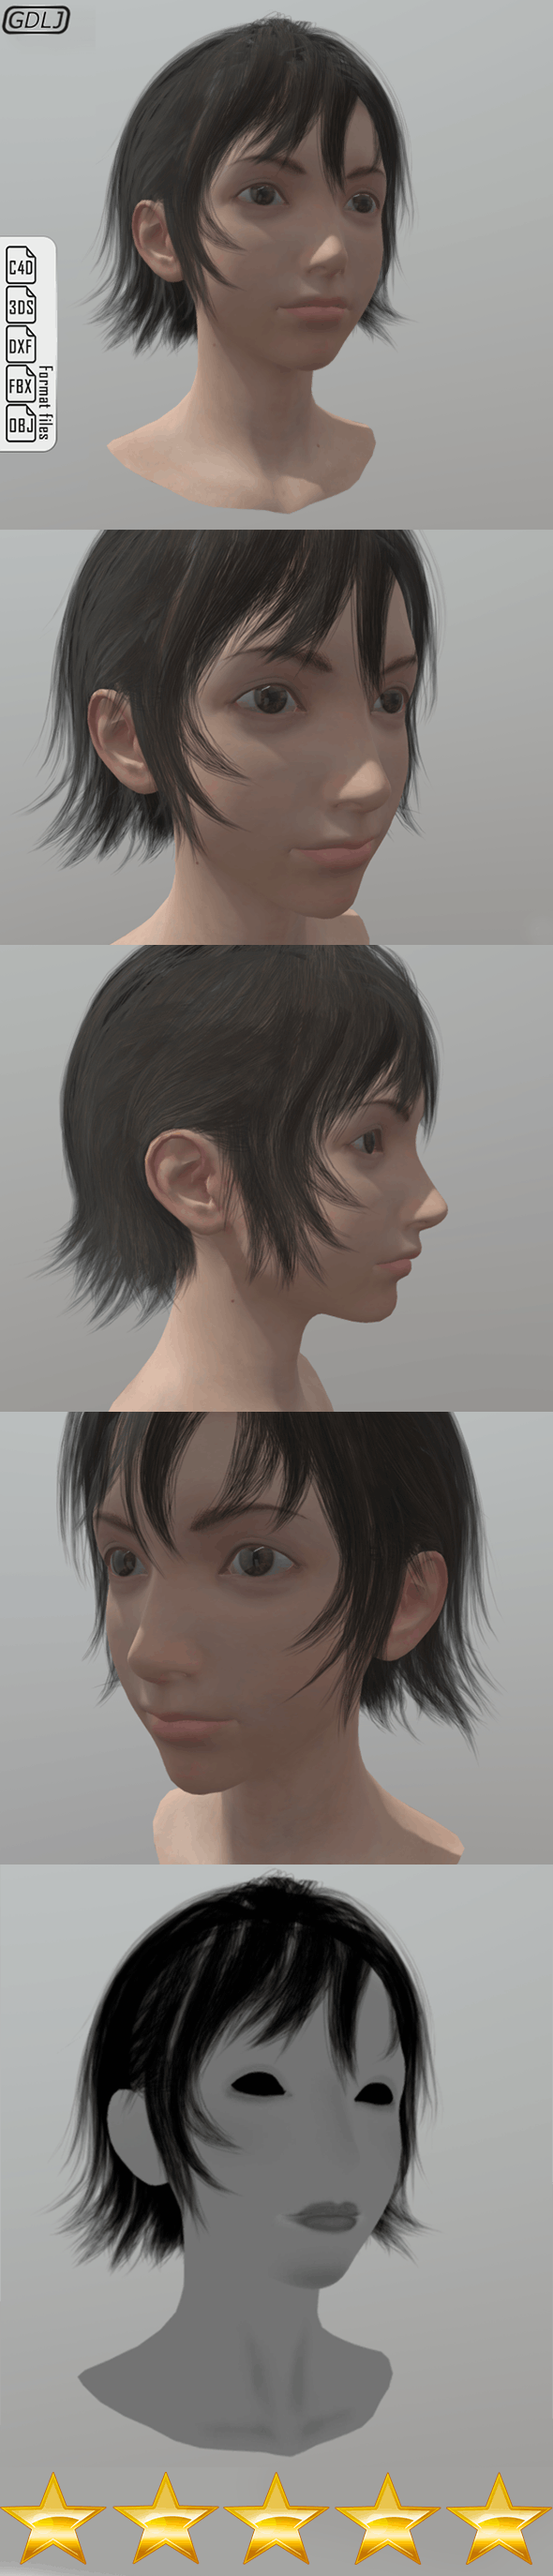 Iris Amicitia girl with full face and hair - 3DOcean Item for Sale